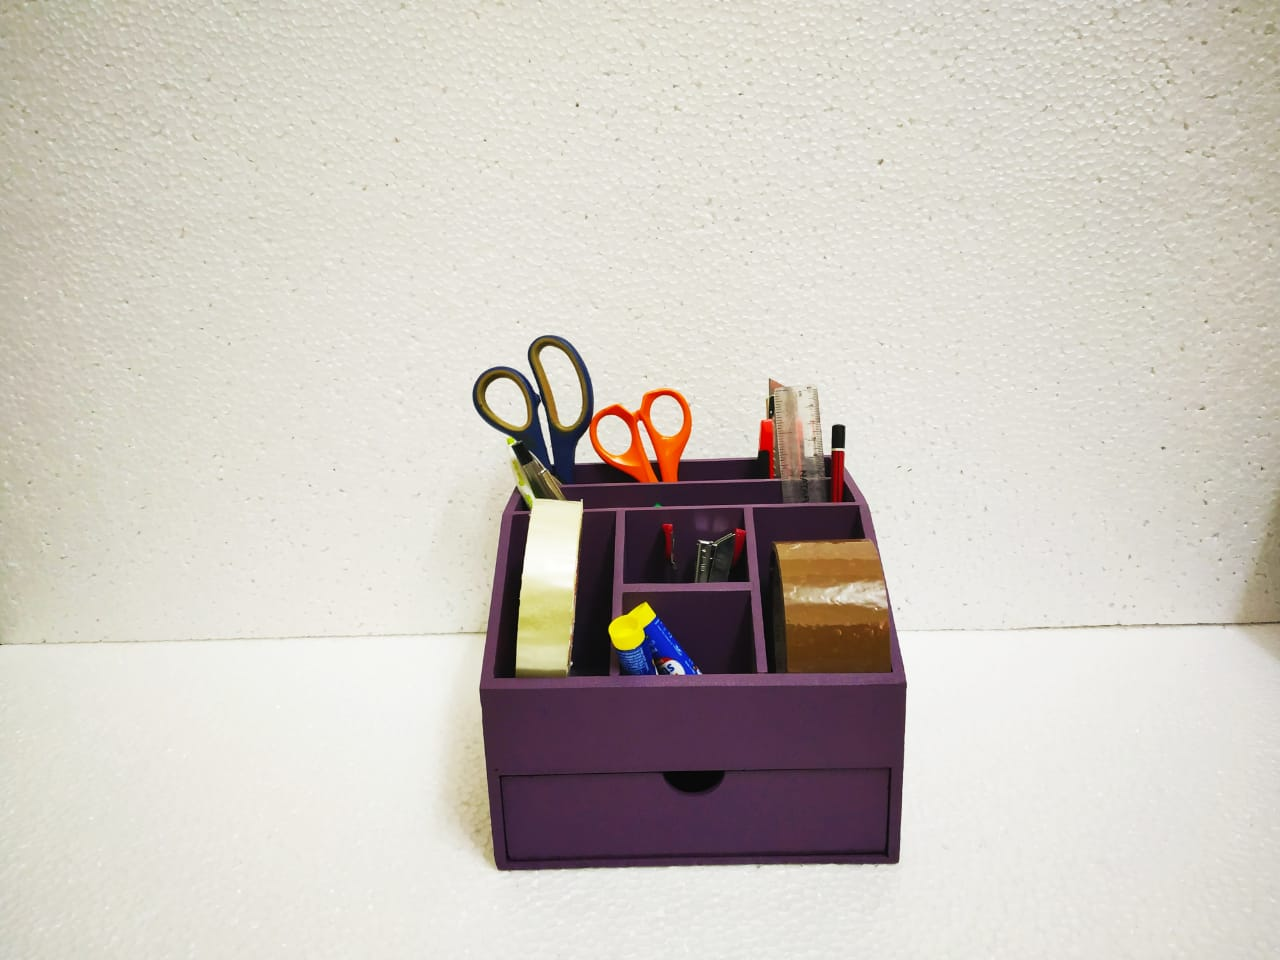 Desk organiser with 7 compartments